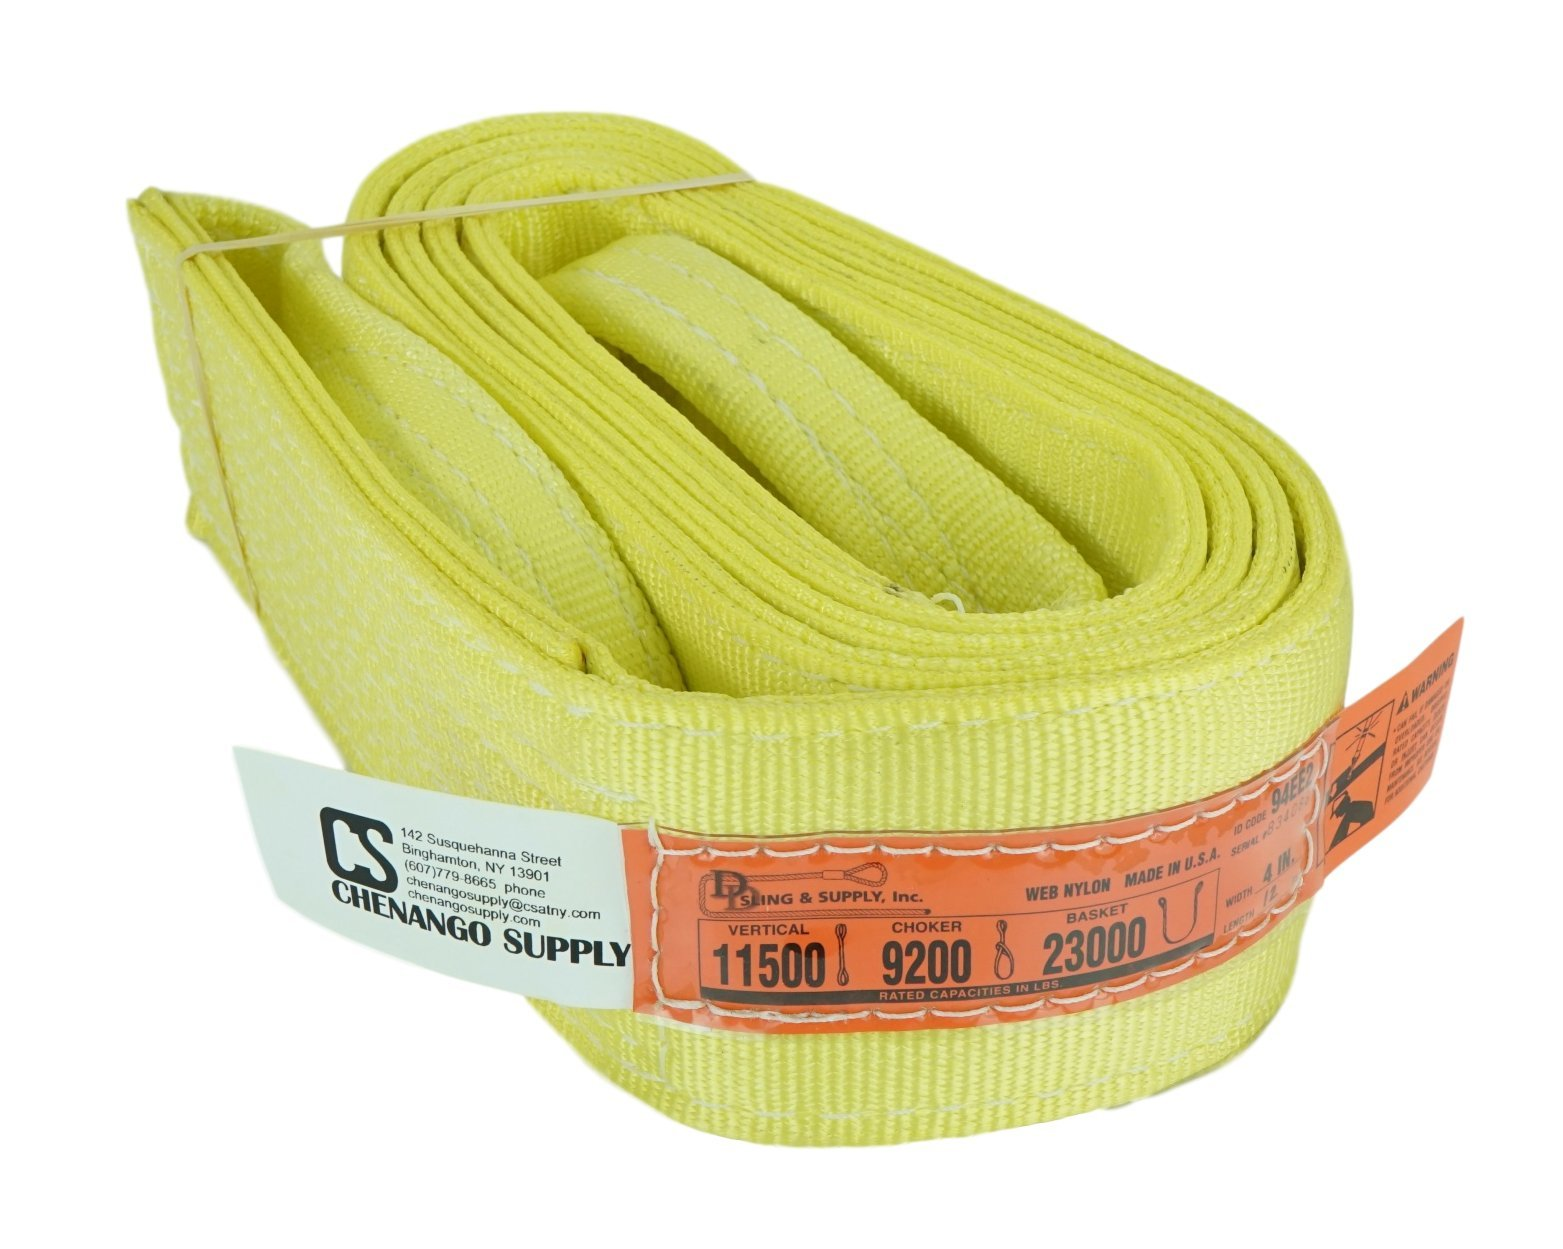 DD Sling. Multiple Sizes In Listing (Made in the USA) 4'' x 12', 2 Ply, Nylon Lifting Slings, Eye & Eye, Heavy Duty (900 webbing), 11,500 lbs Vertical, 9,200 Choker lbs, 23,000 lbs Basket Load Capacity (Made In The USA) (4''x12')